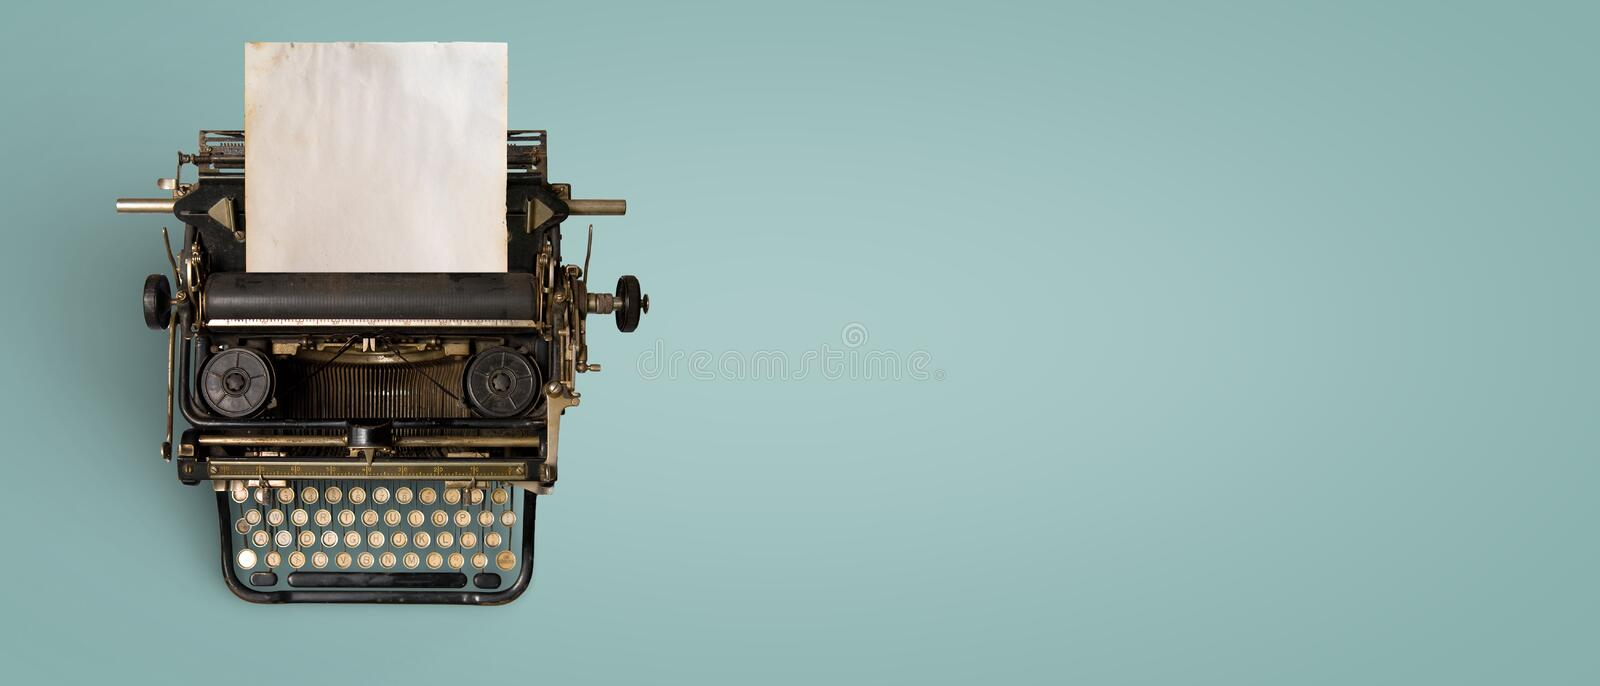 Vintage typewriter header with old paper stock image